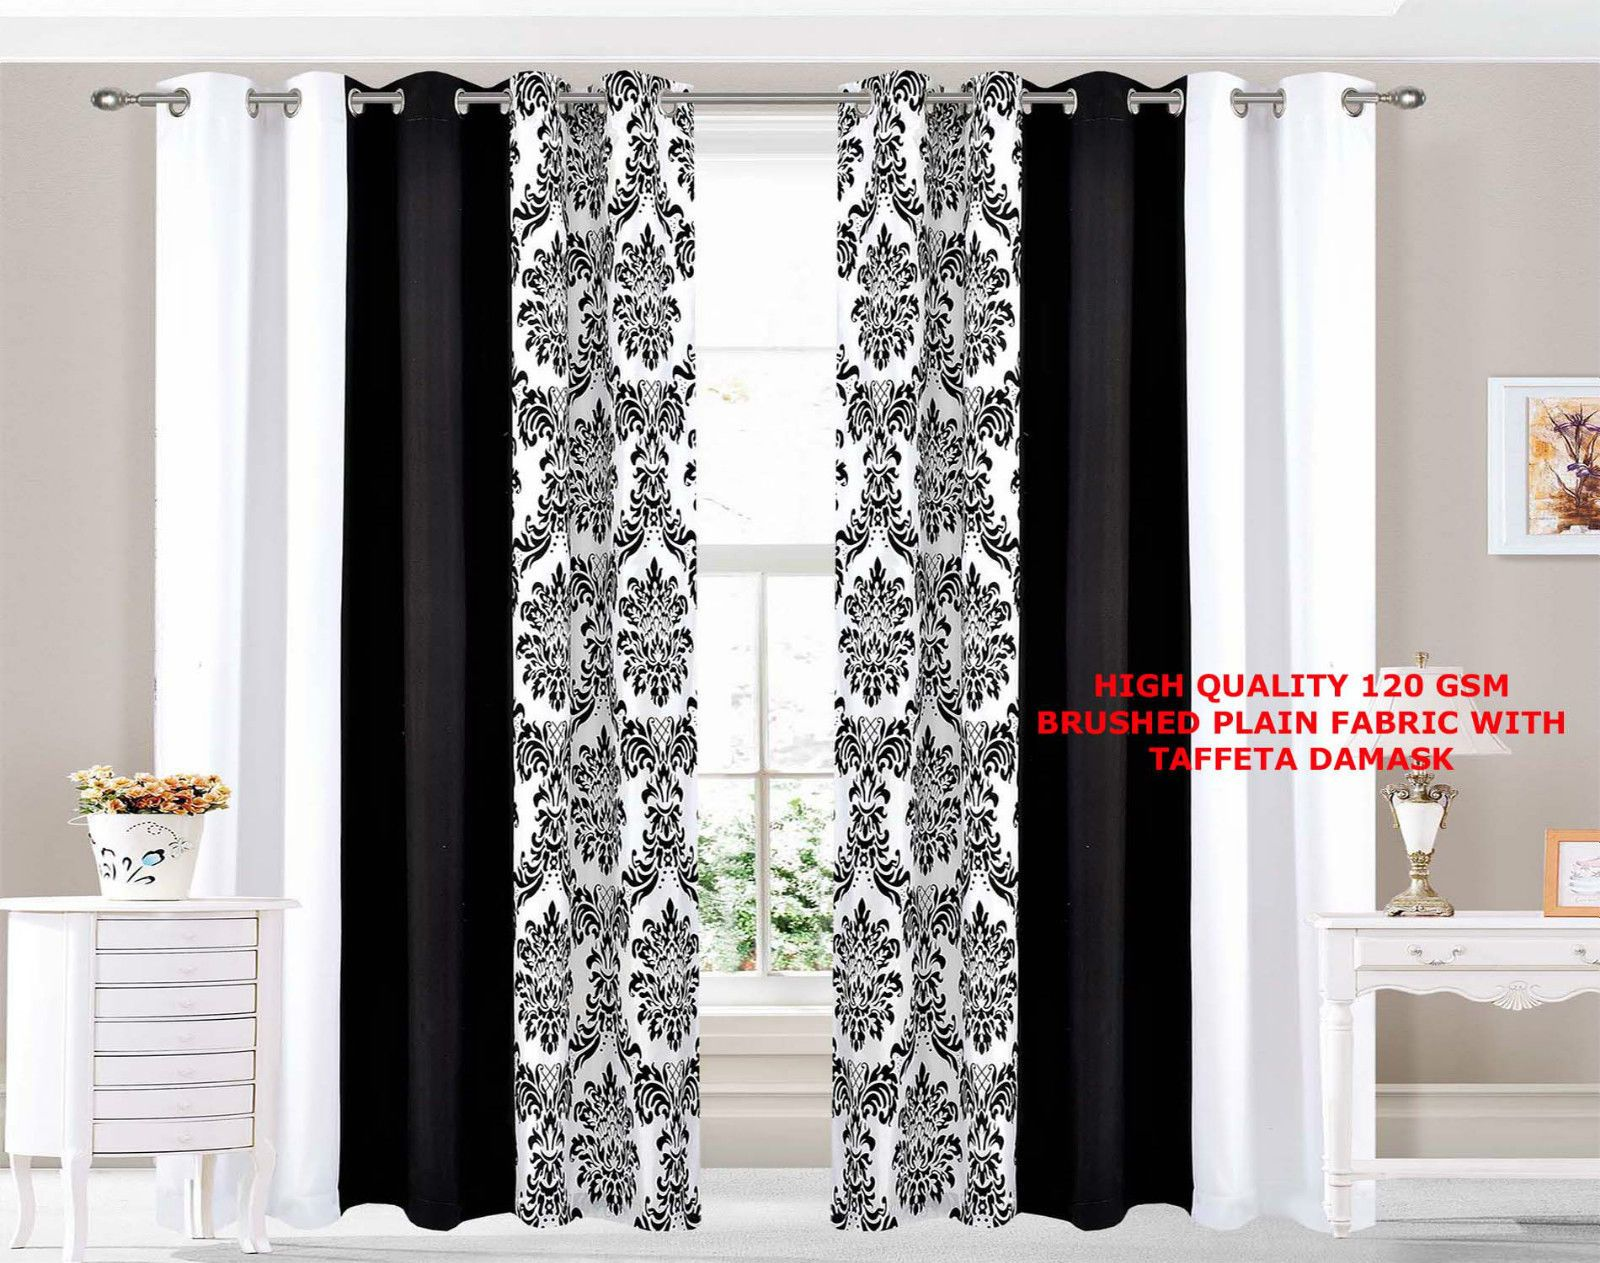 Damask 3 Tone Flock Ring Top Fully Lined Pair Eyelet Window Curtains Black White Black Curtains Curtains With Rings White Damask